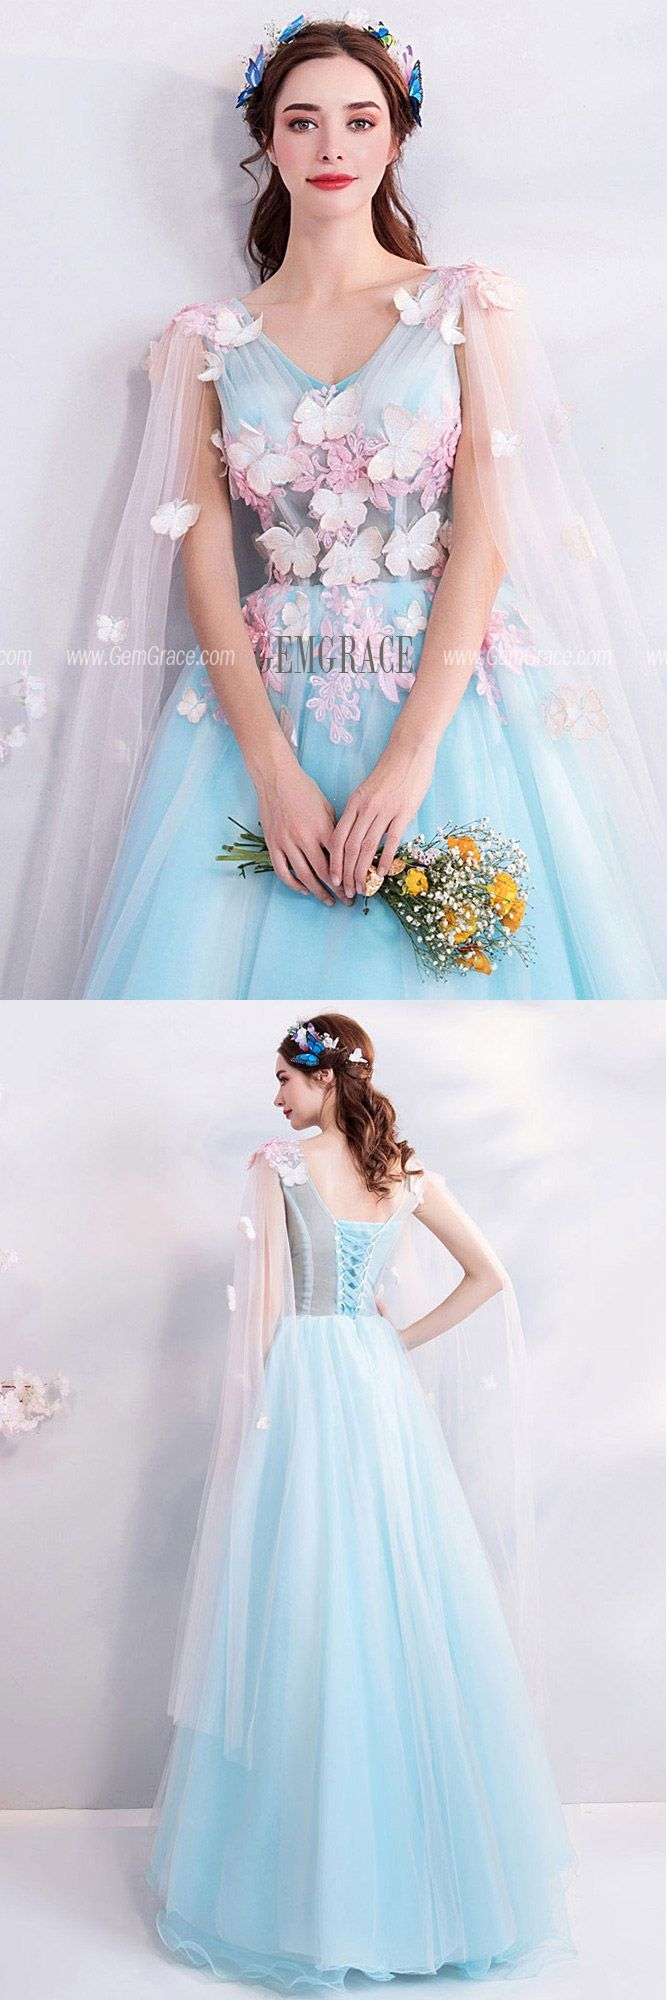 3ee57d8c69 Fairy Butterfly Blue Formal Long Prom Dress With Petals Cape  T69124 at  GemGrace.